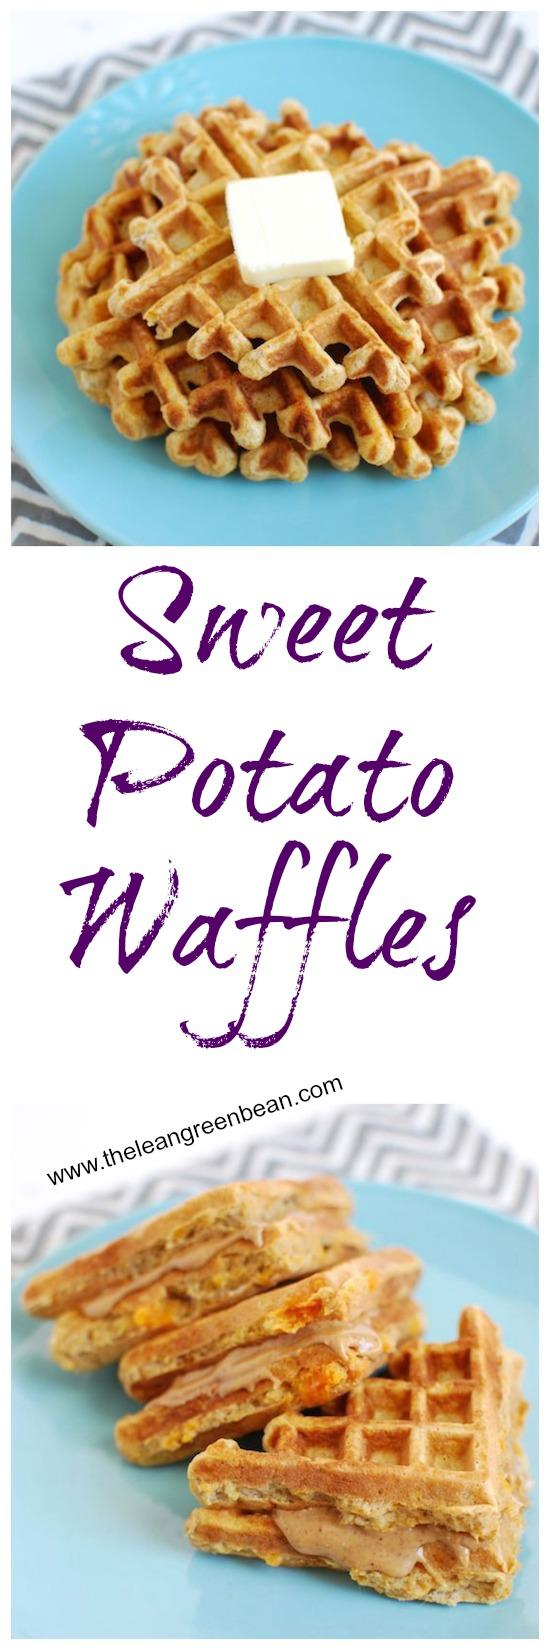 Start your day off right with these Sweet Potato Waffles for breakfast. They're healthy and simple and you can also make them ahead of time and reheat them for a snack or before or after a workout.